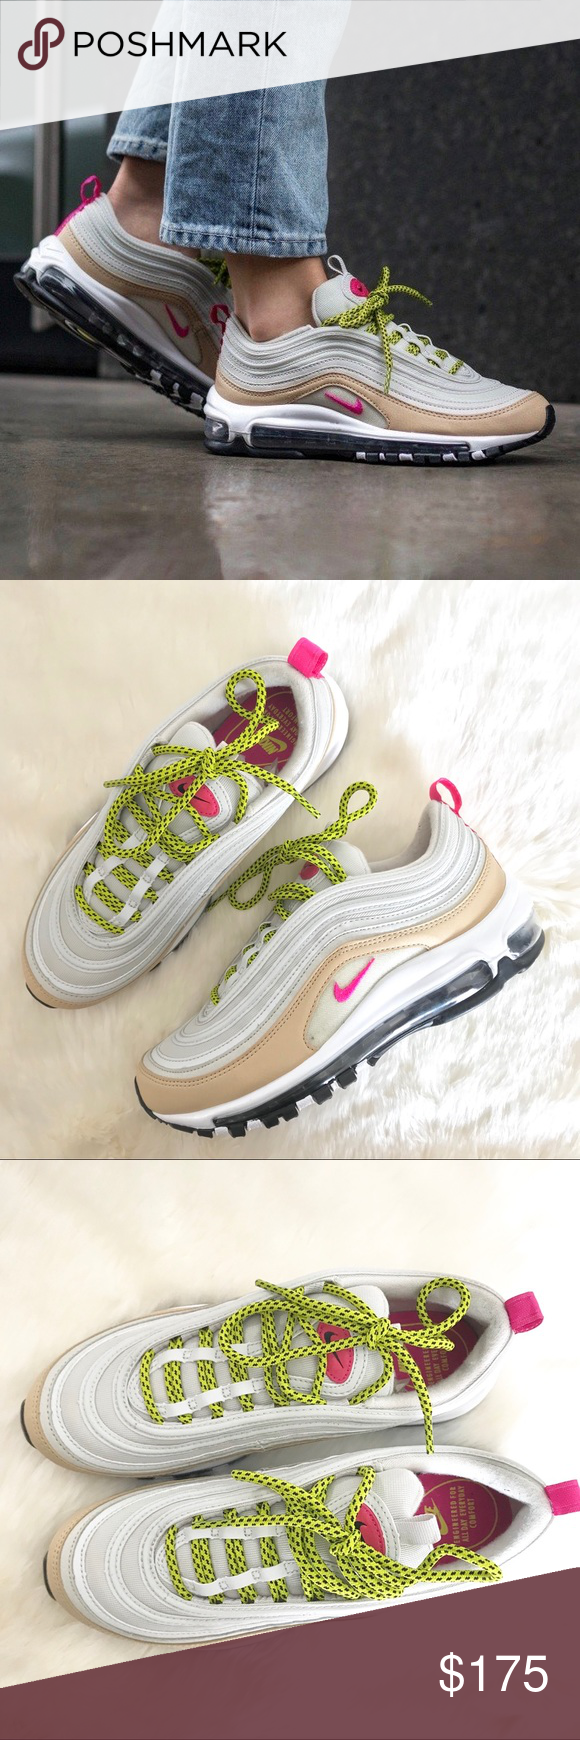 Nike Air Max 97 Light Bone/Deadly Pink Sneakers